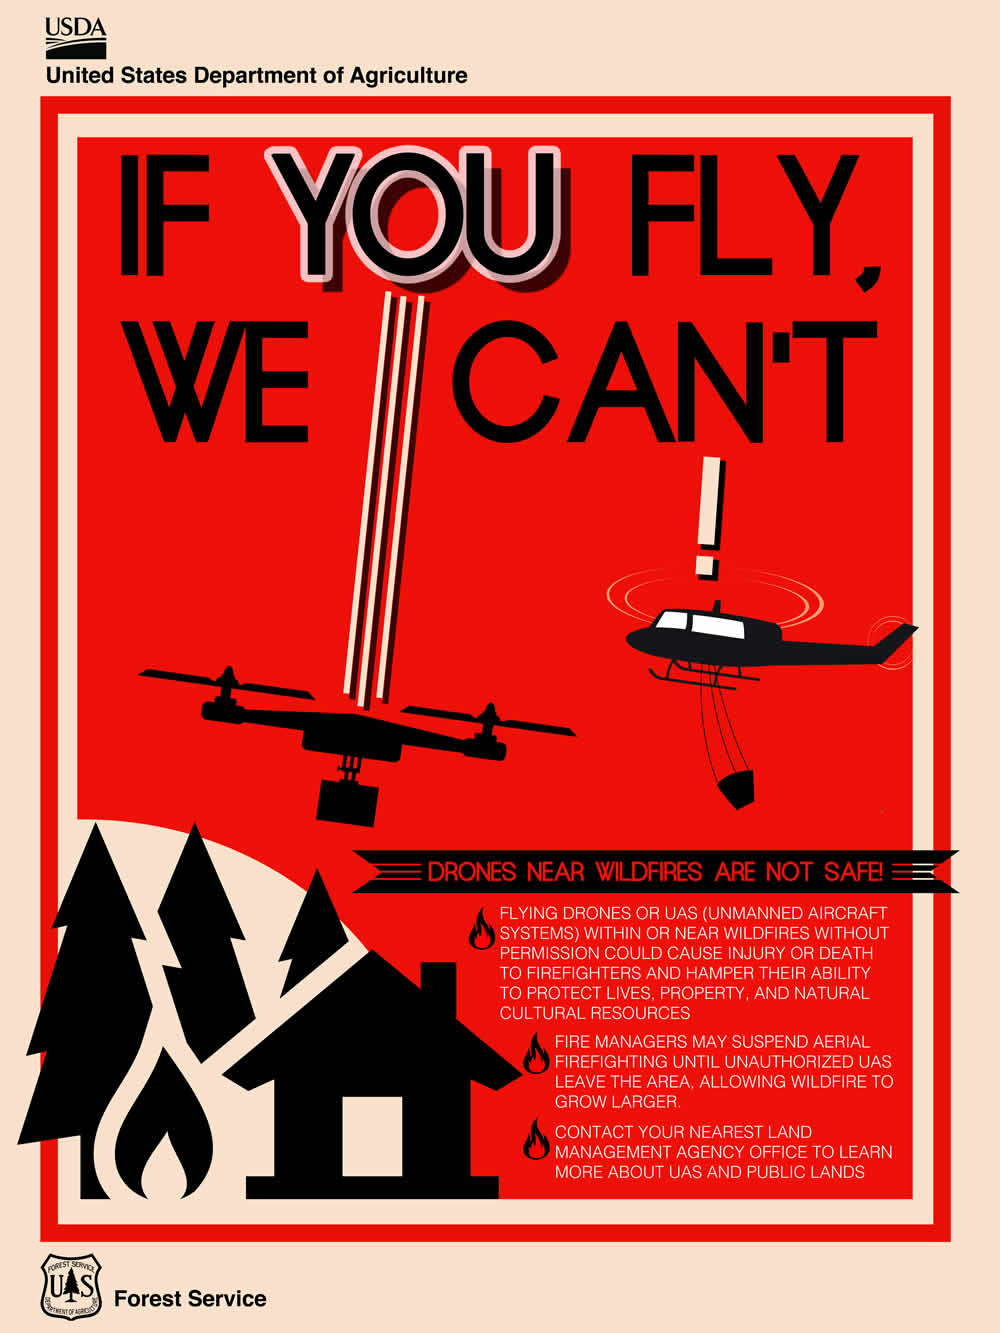 Image: with wording if you fly we cant showing a drone and a helicopter